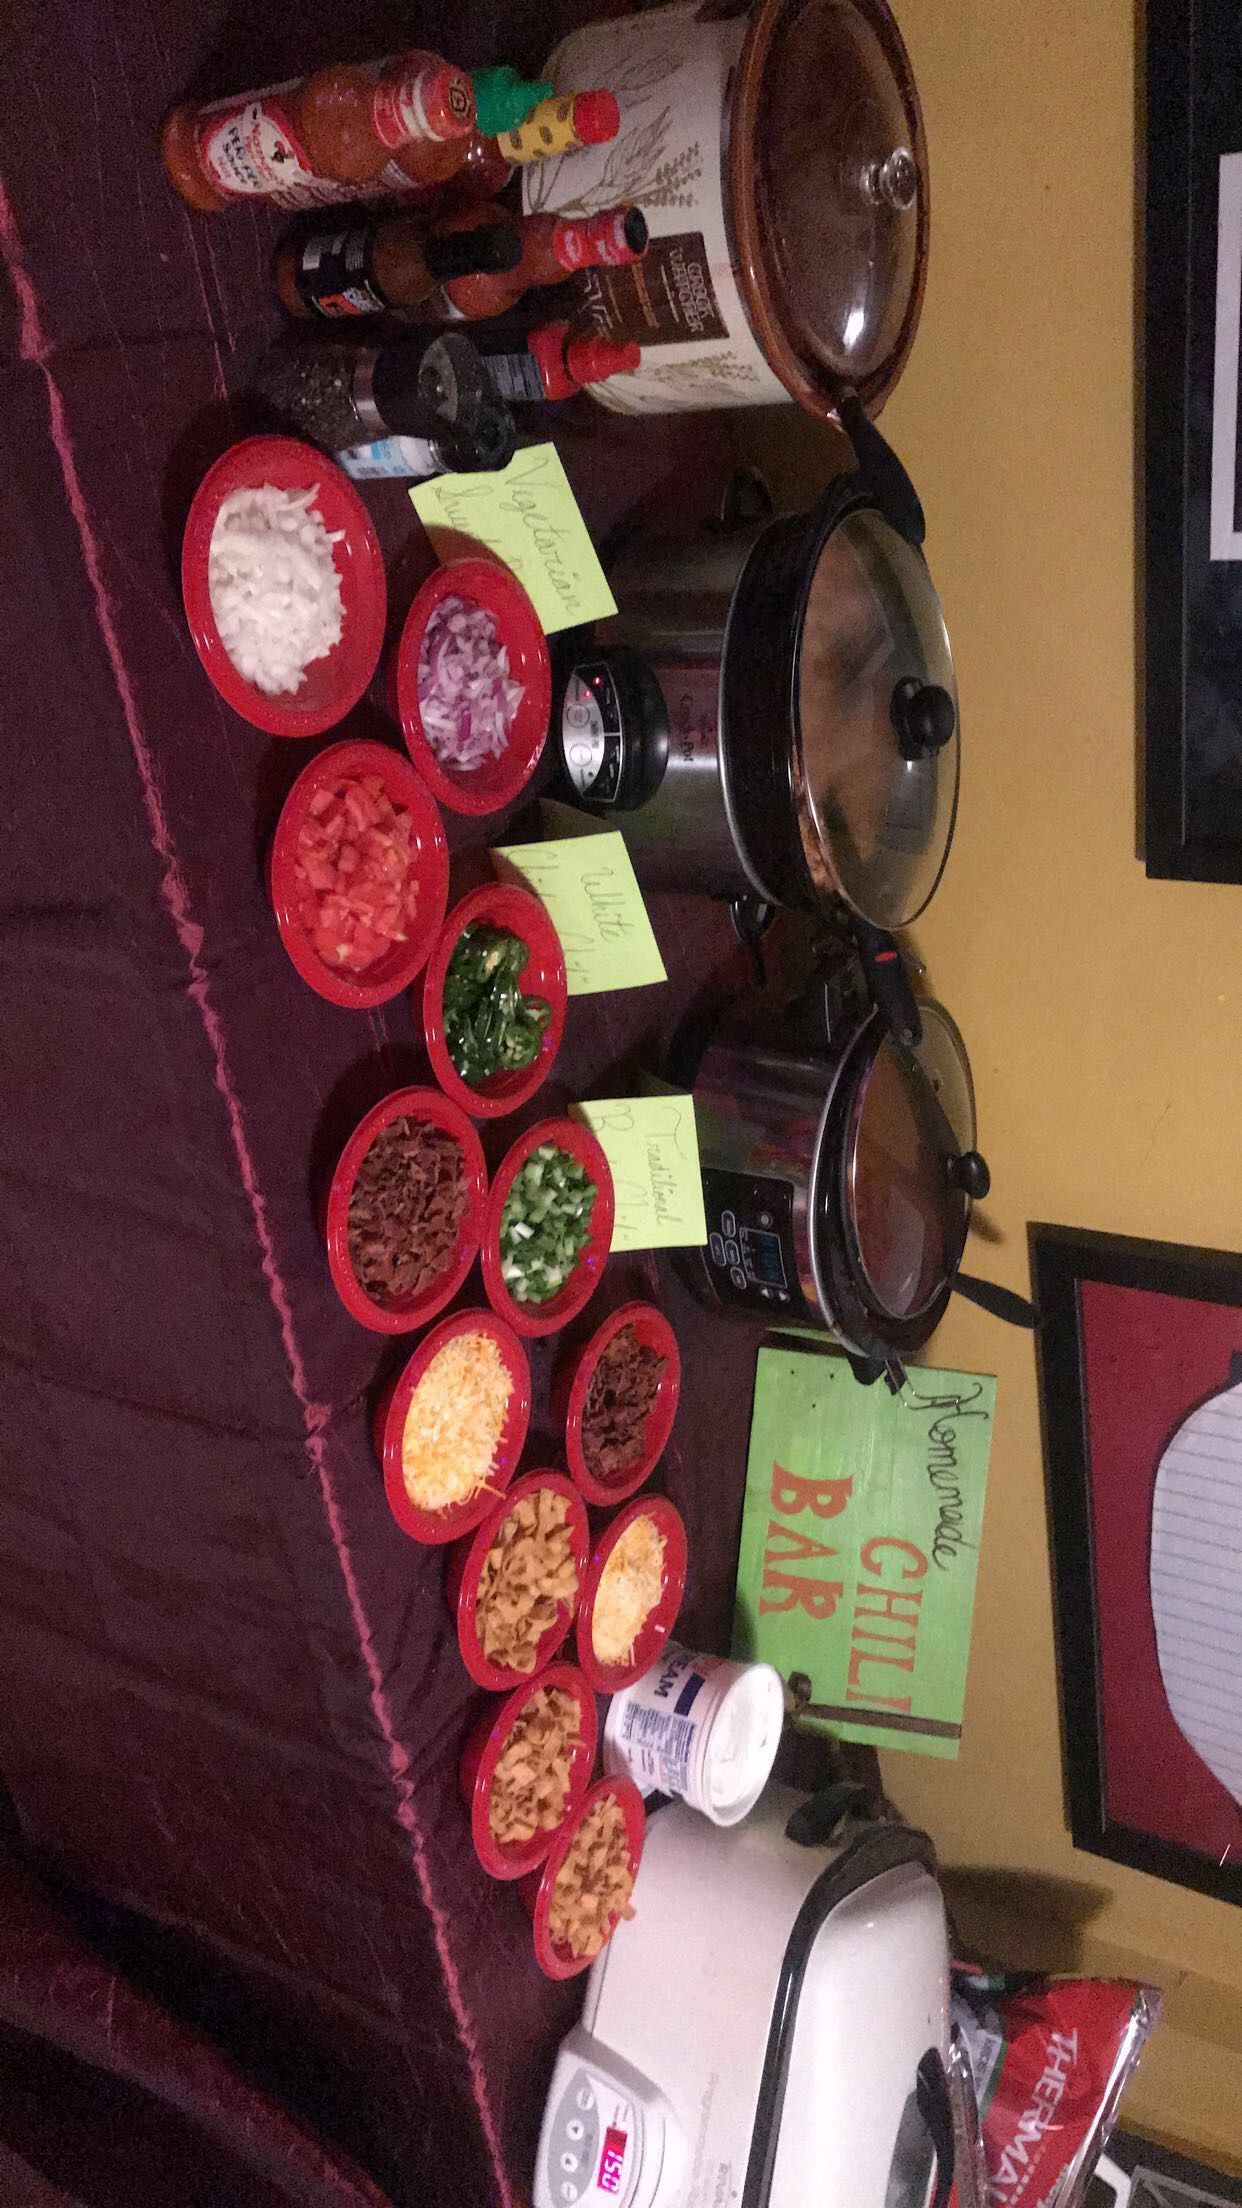 Homemade chili bar #chilibar Homemade chili bar #chilibar